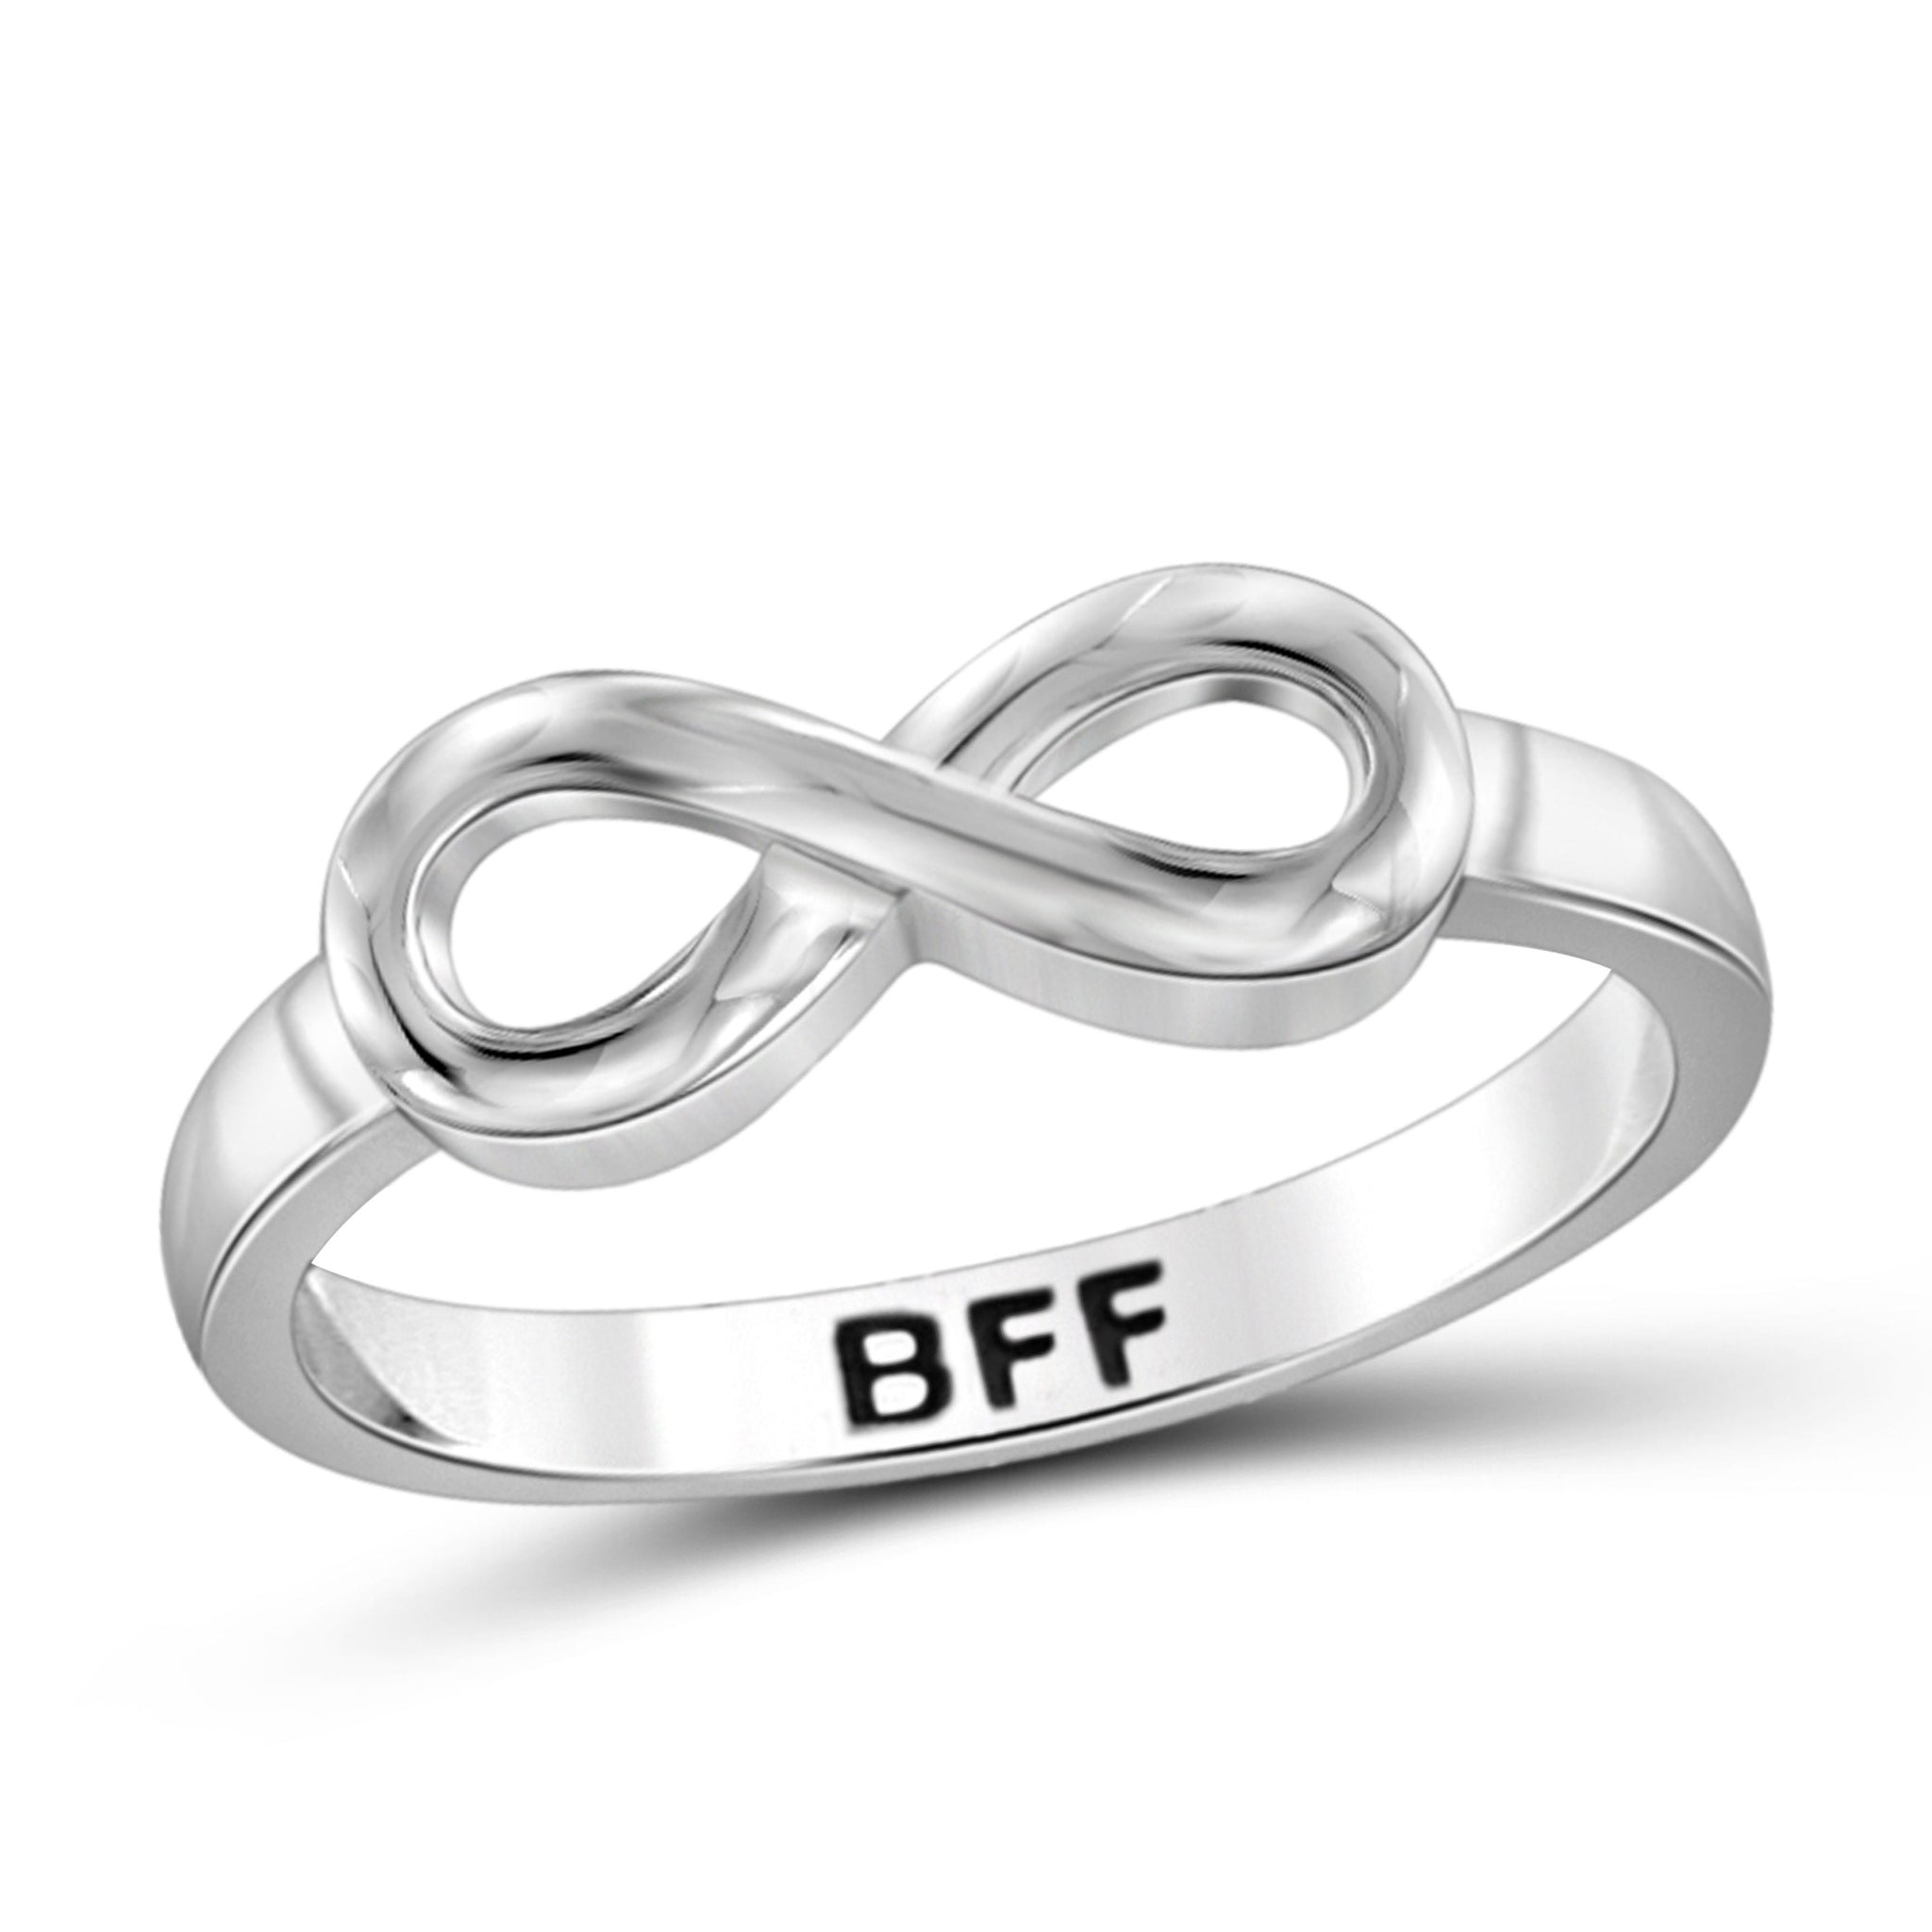 JewelonFire Sterling Silver Infinity Friendship Ring for Women | Personalized BFF Promise Eternity Knot Symbol Band